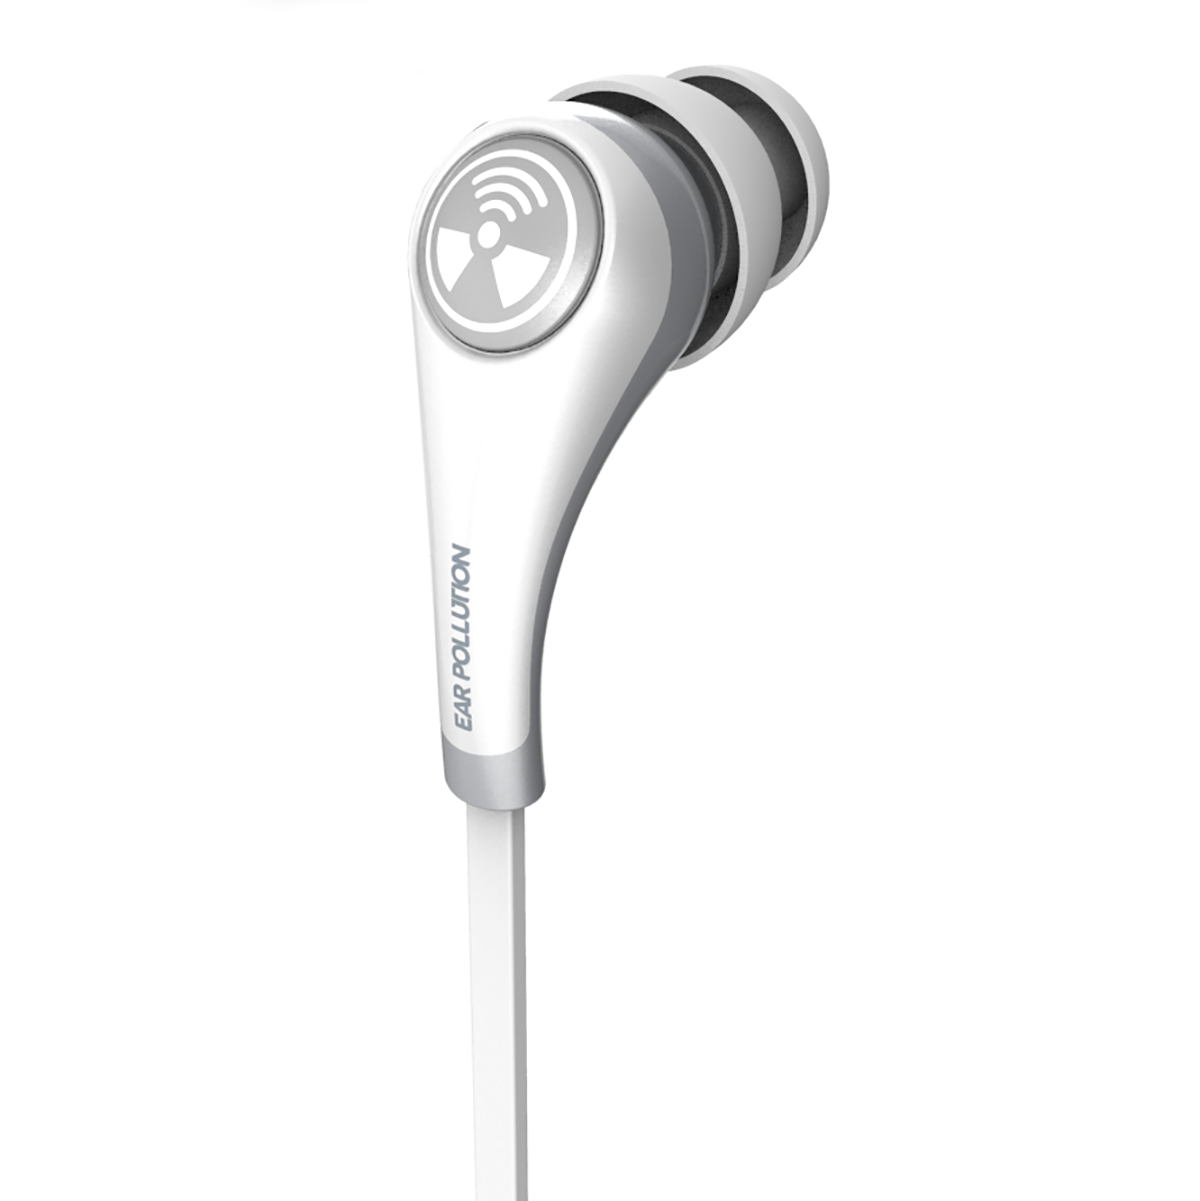 iFrogz Earpollution Plugz Mobile Earbuds with Mic